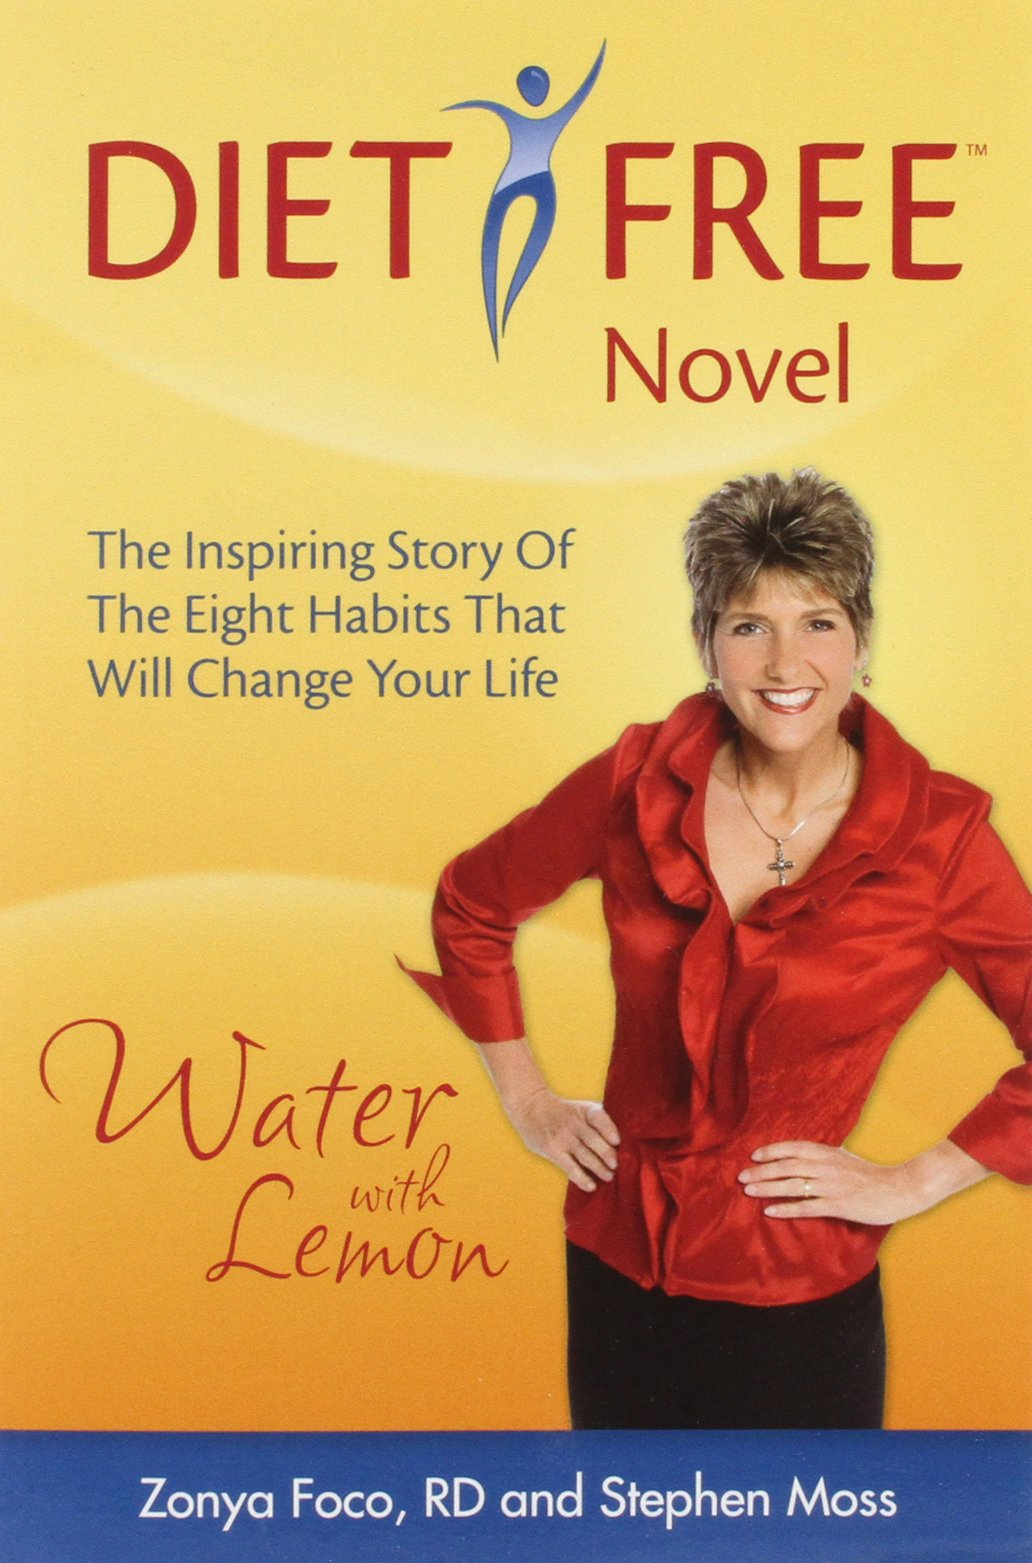 Image OfWater With Lemon: An Inspiring Story Of Diet-free, Guilt-free Weight Loss!